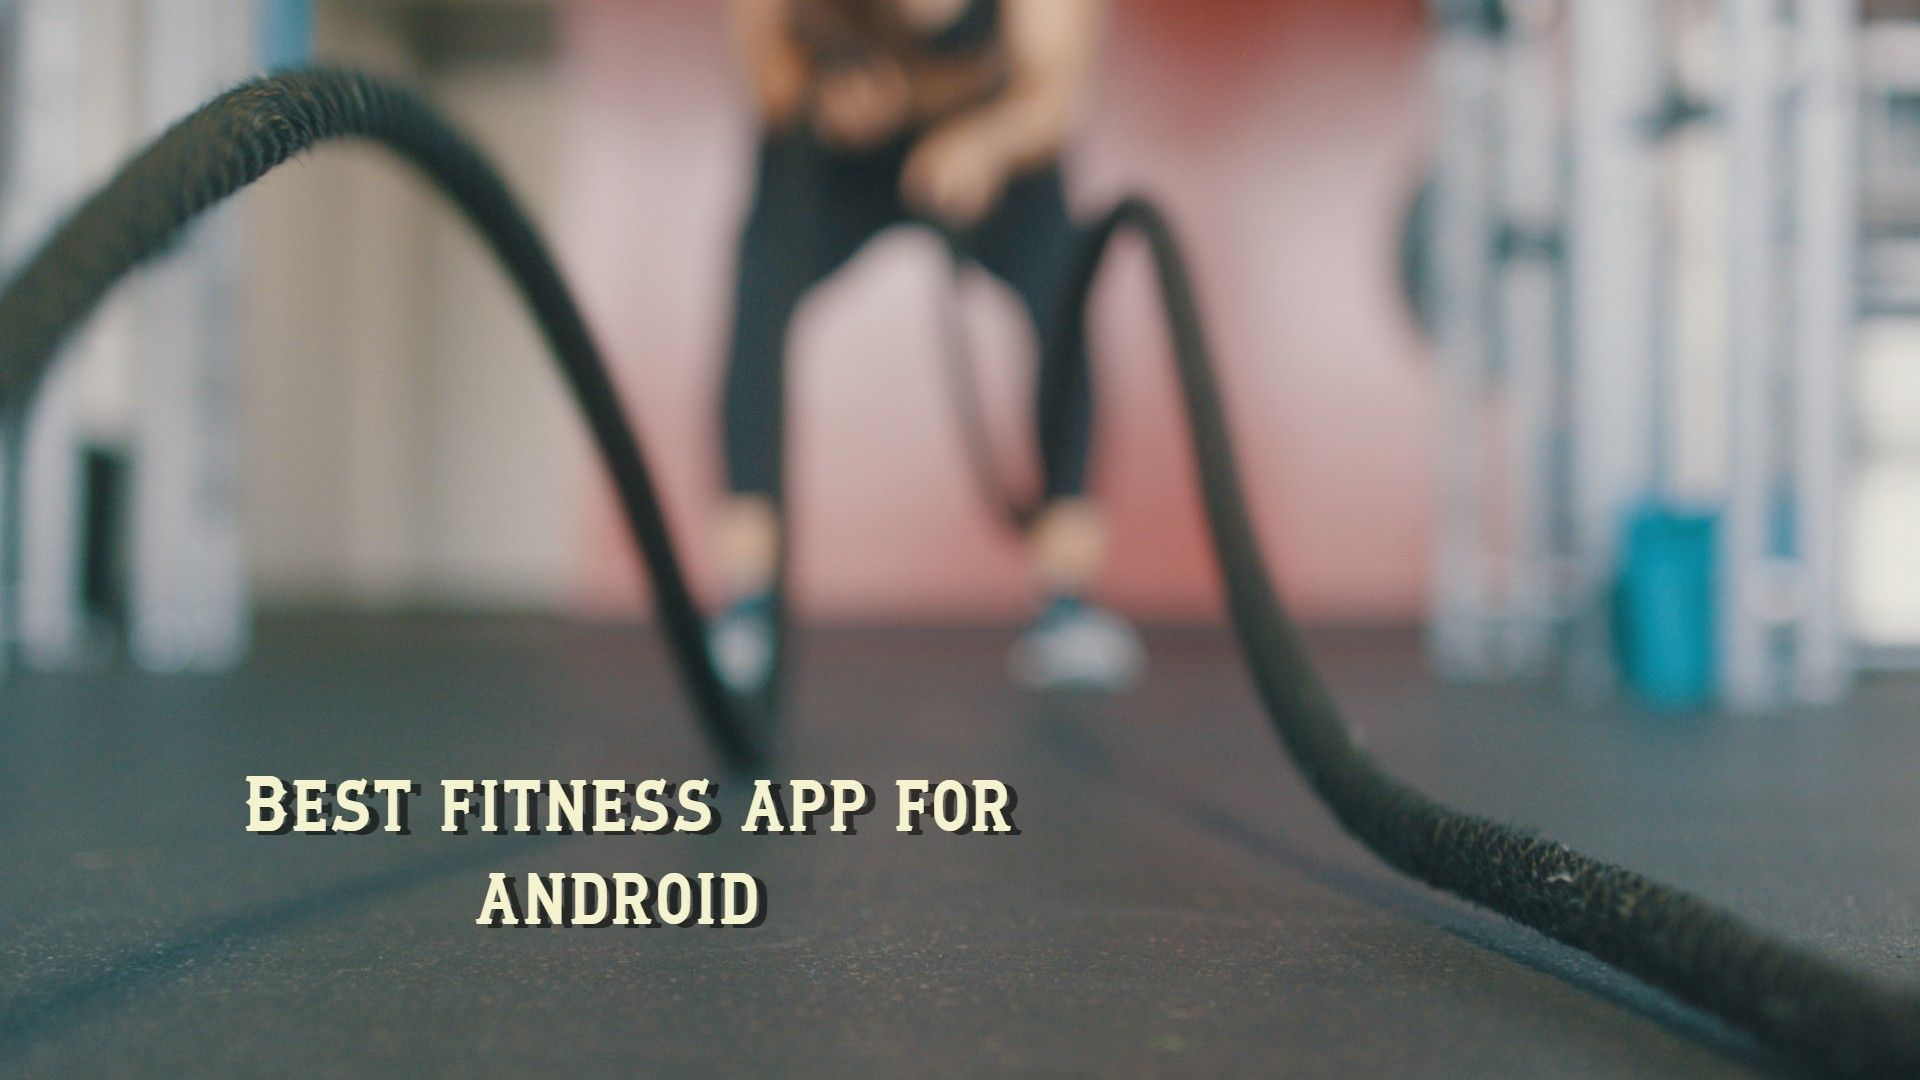 Best fitness apps for android 2019 free (With images